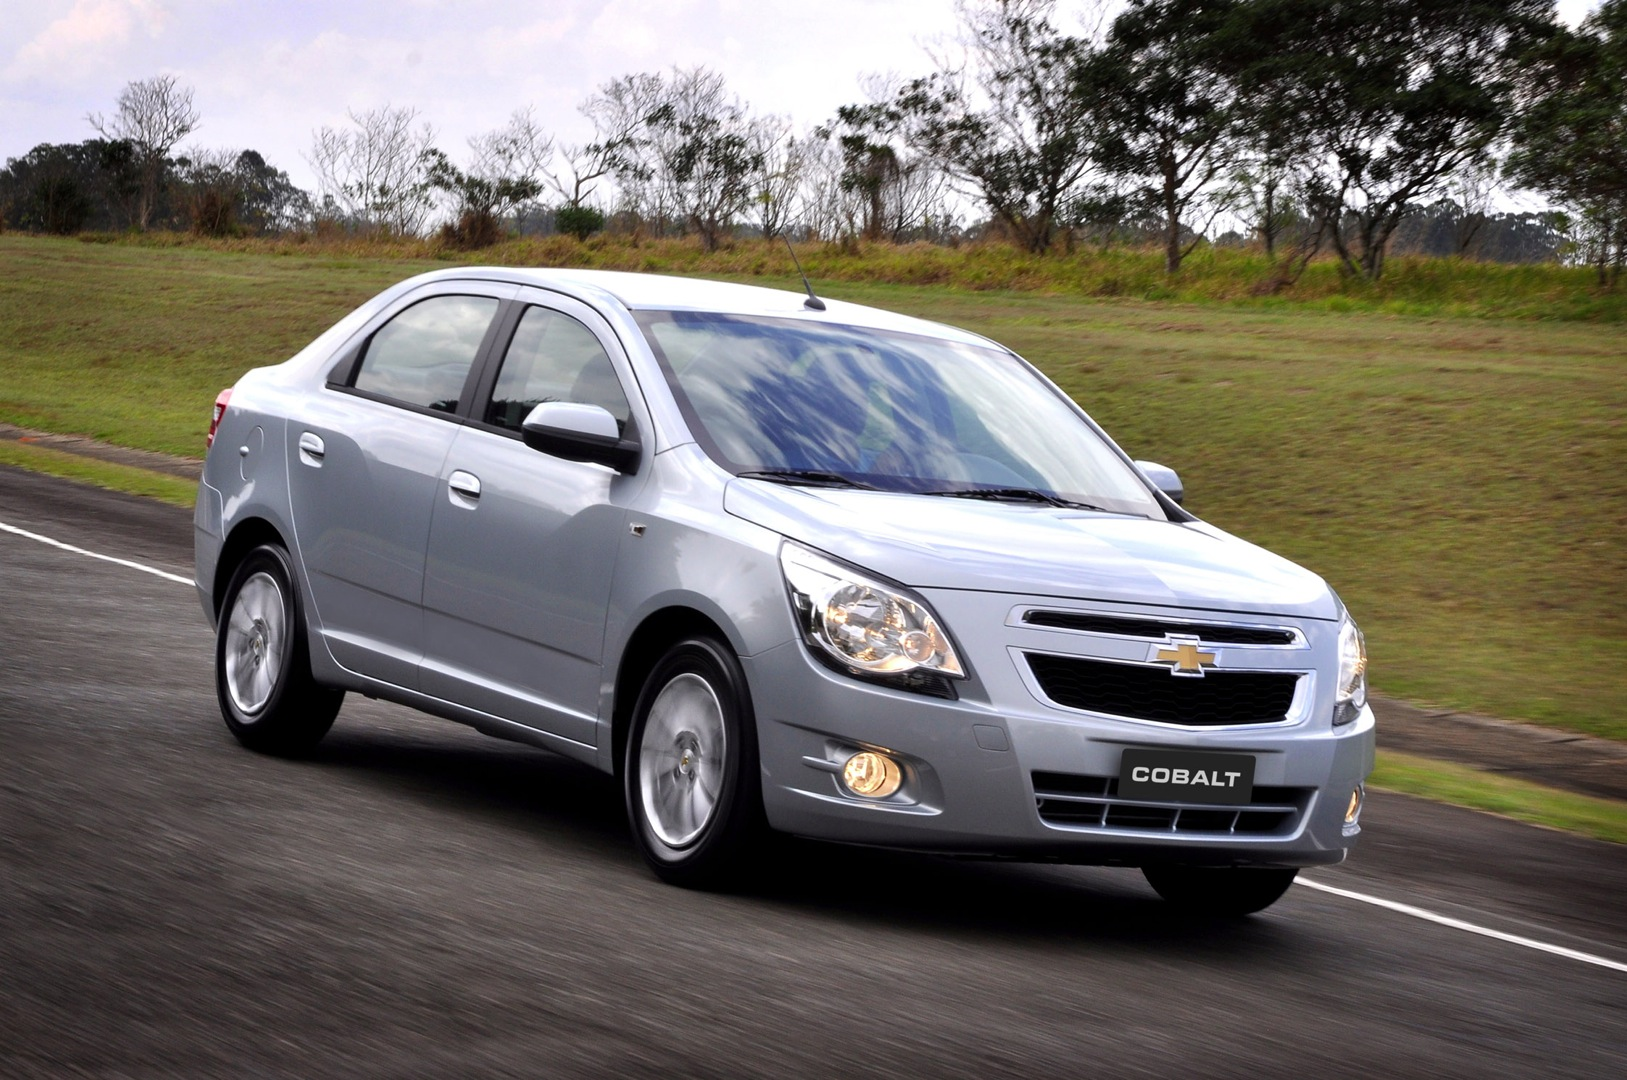 CHEVROLET Cobalt specs & photos - 2011, 2012, 2013, 2014 ...